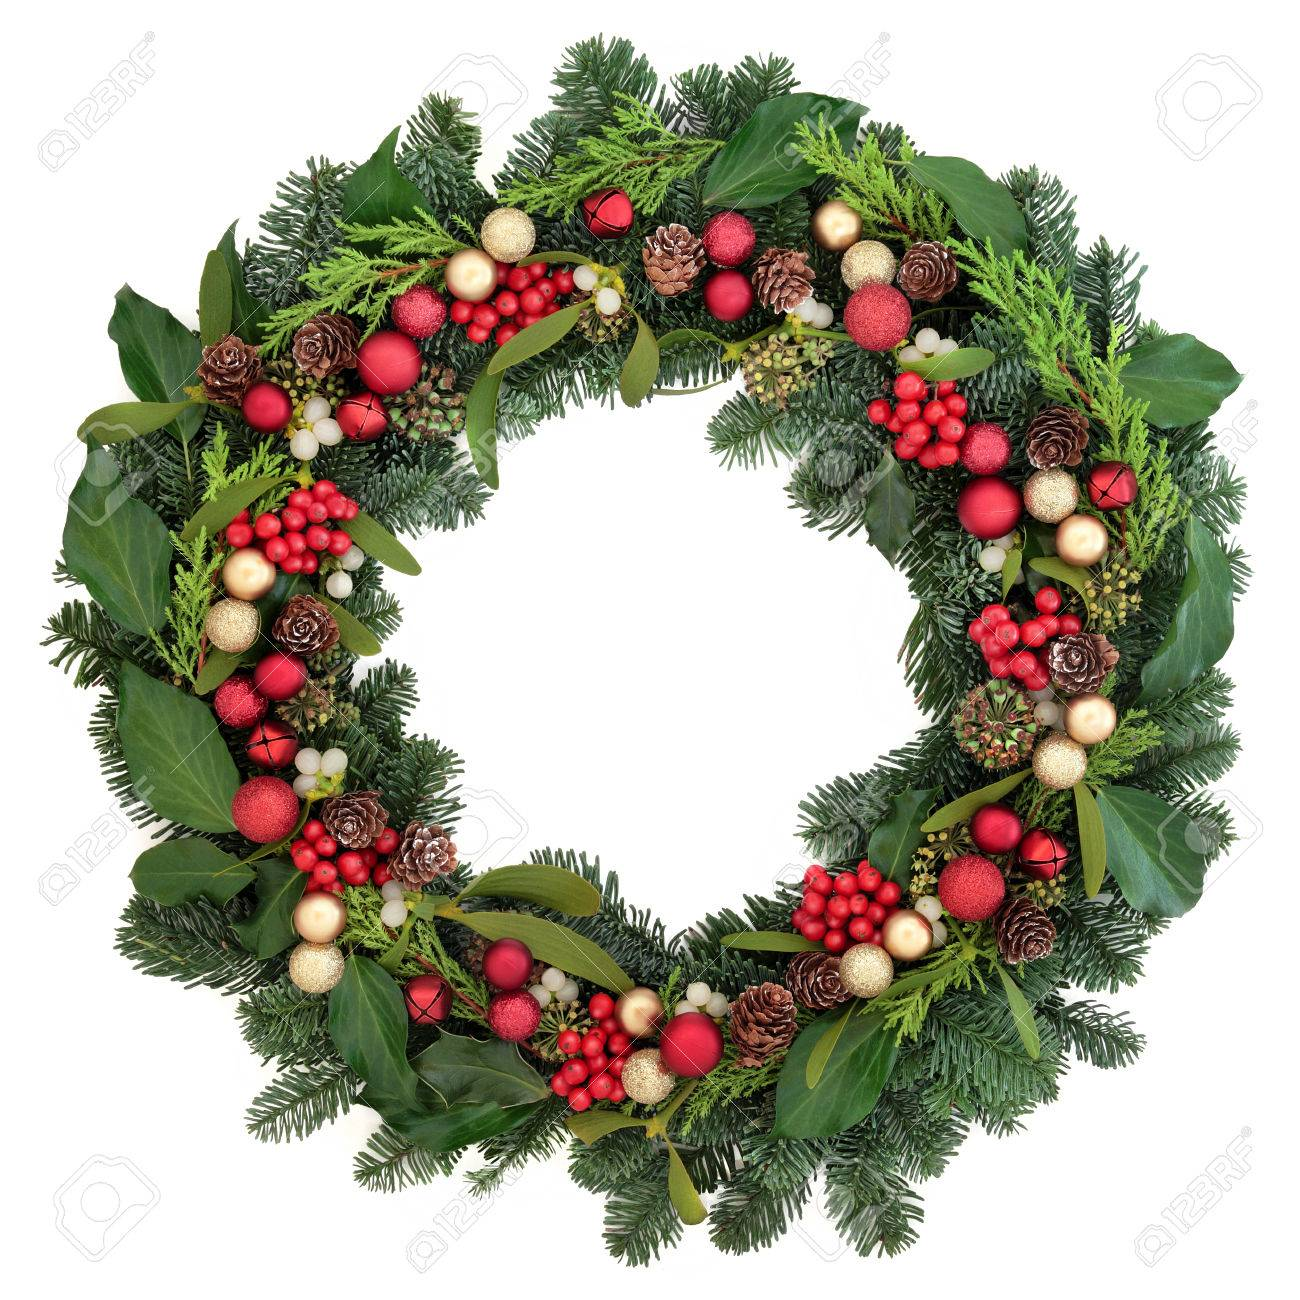 Christmas Wreath With Red Bauble Decorations Holly Ivy Mistletoe